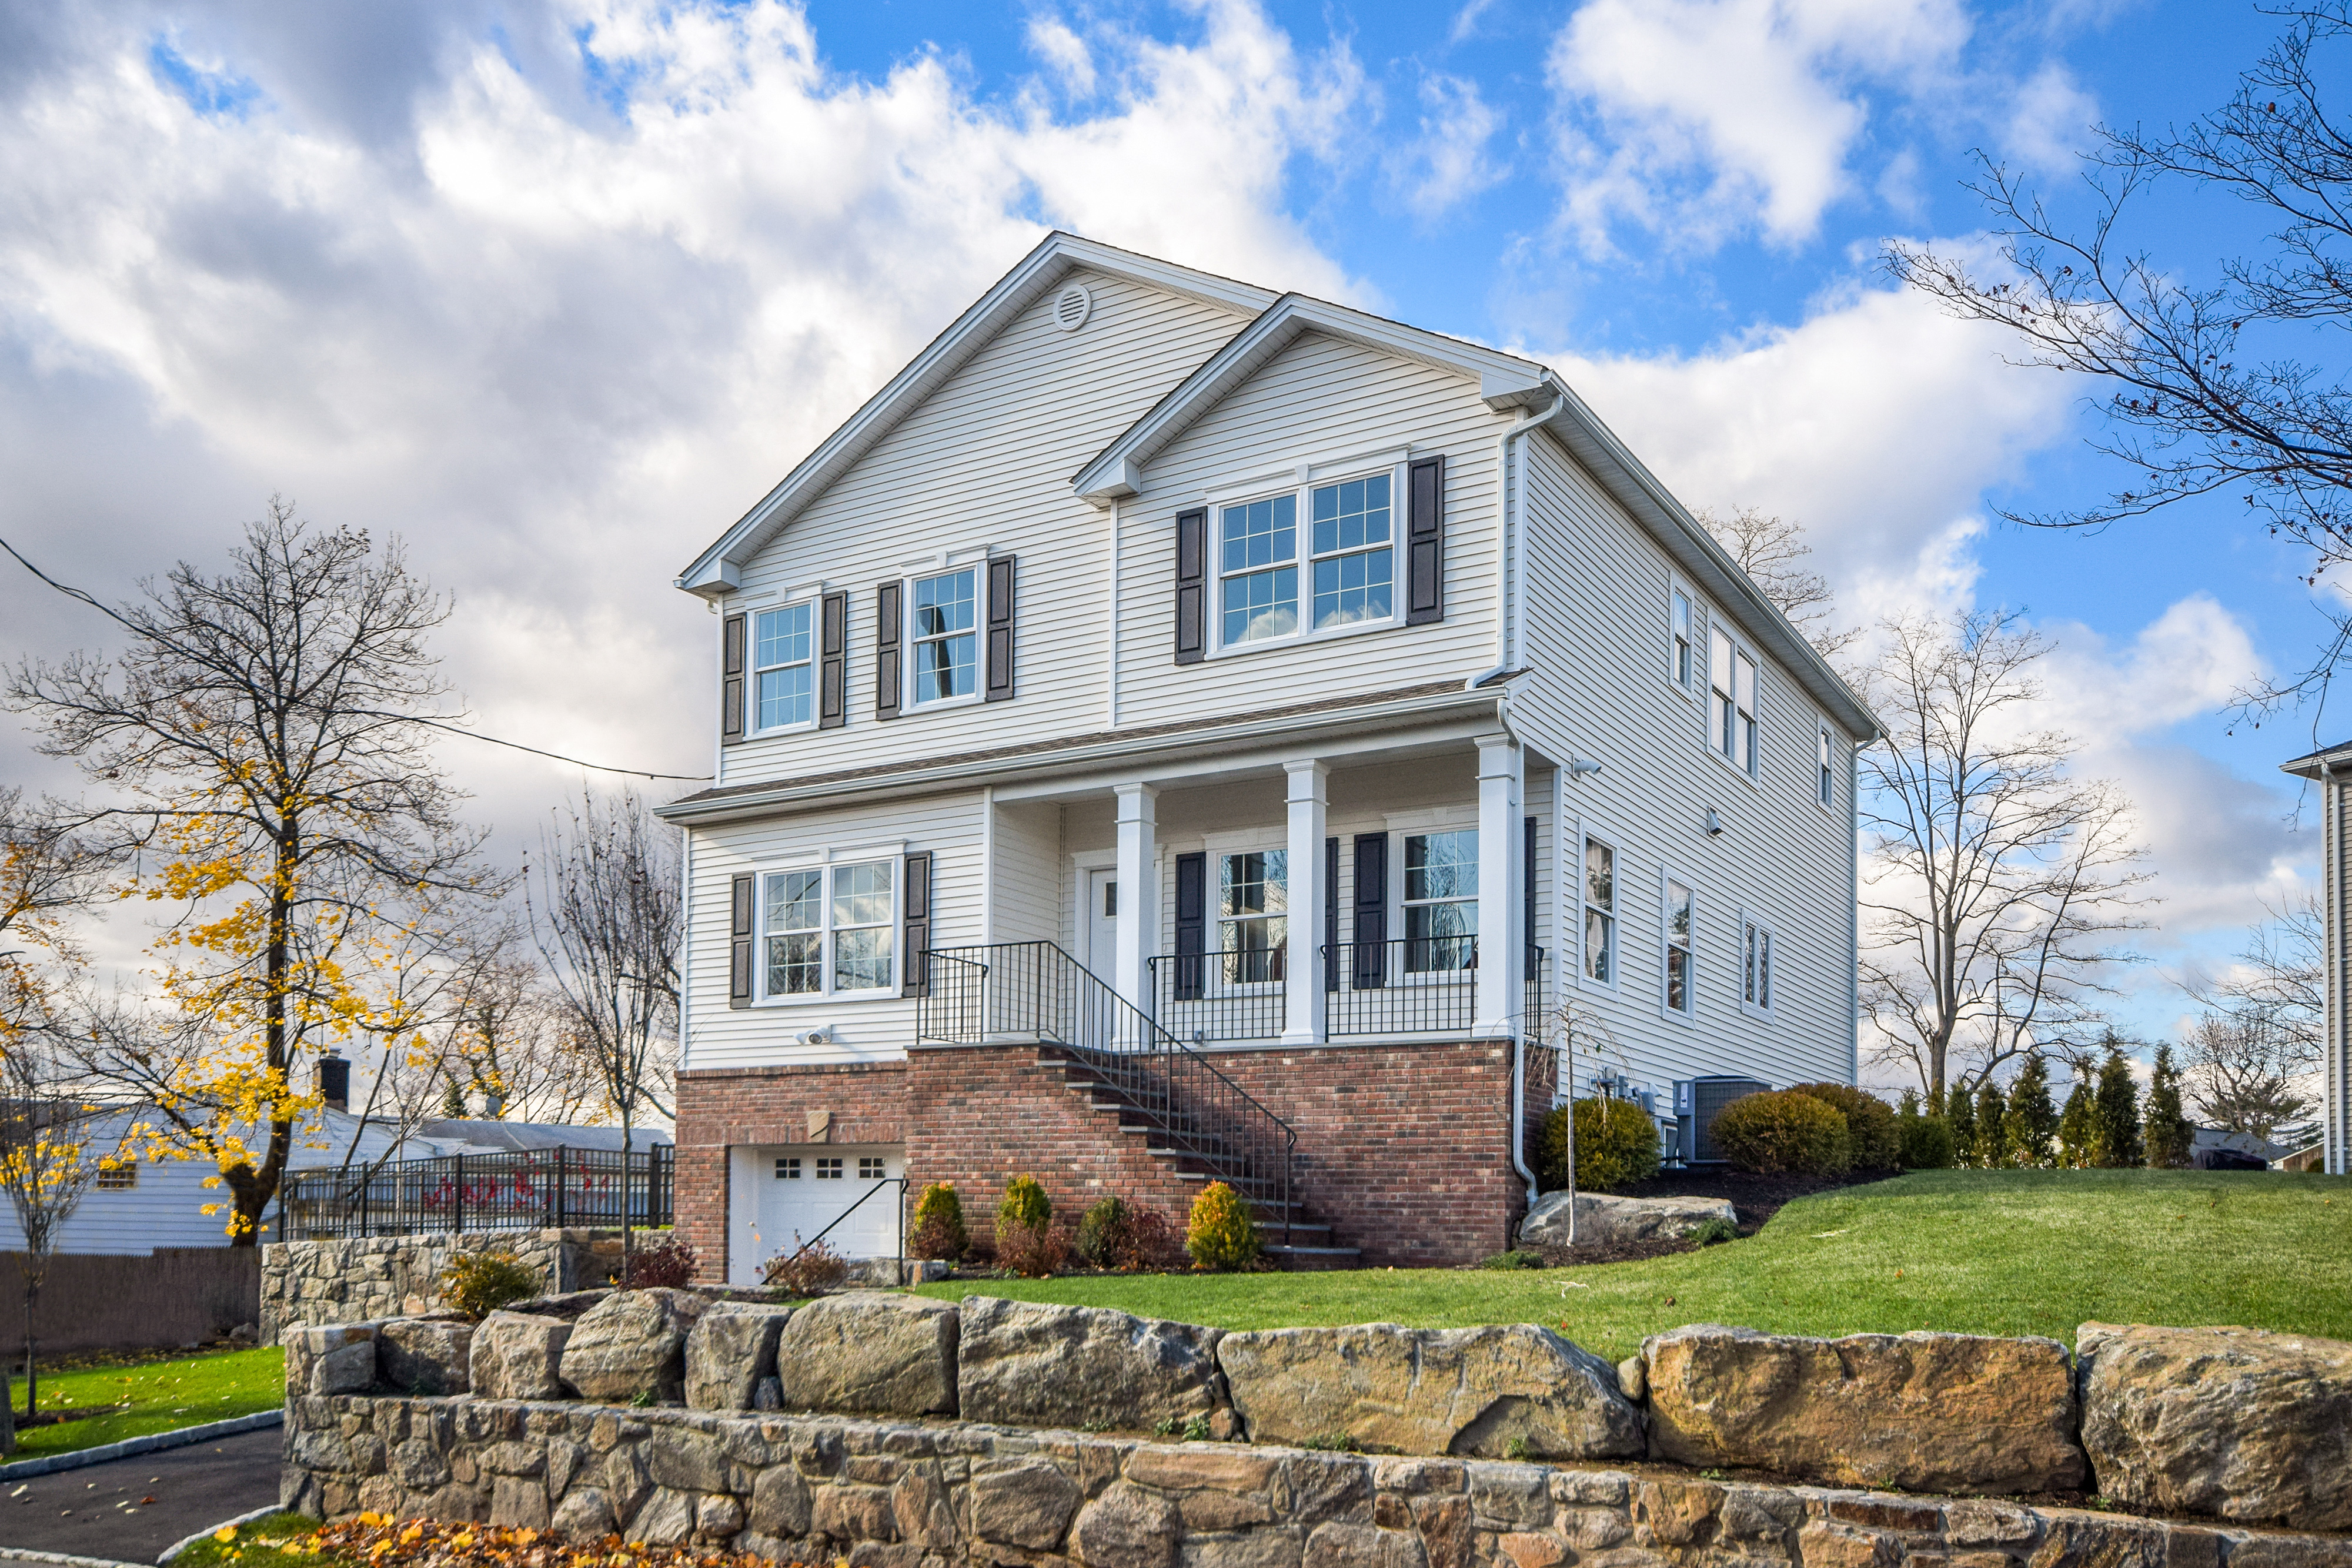 Single Family Home for Sale at 18 Madison Street New Rochelle, New York 10801 United States